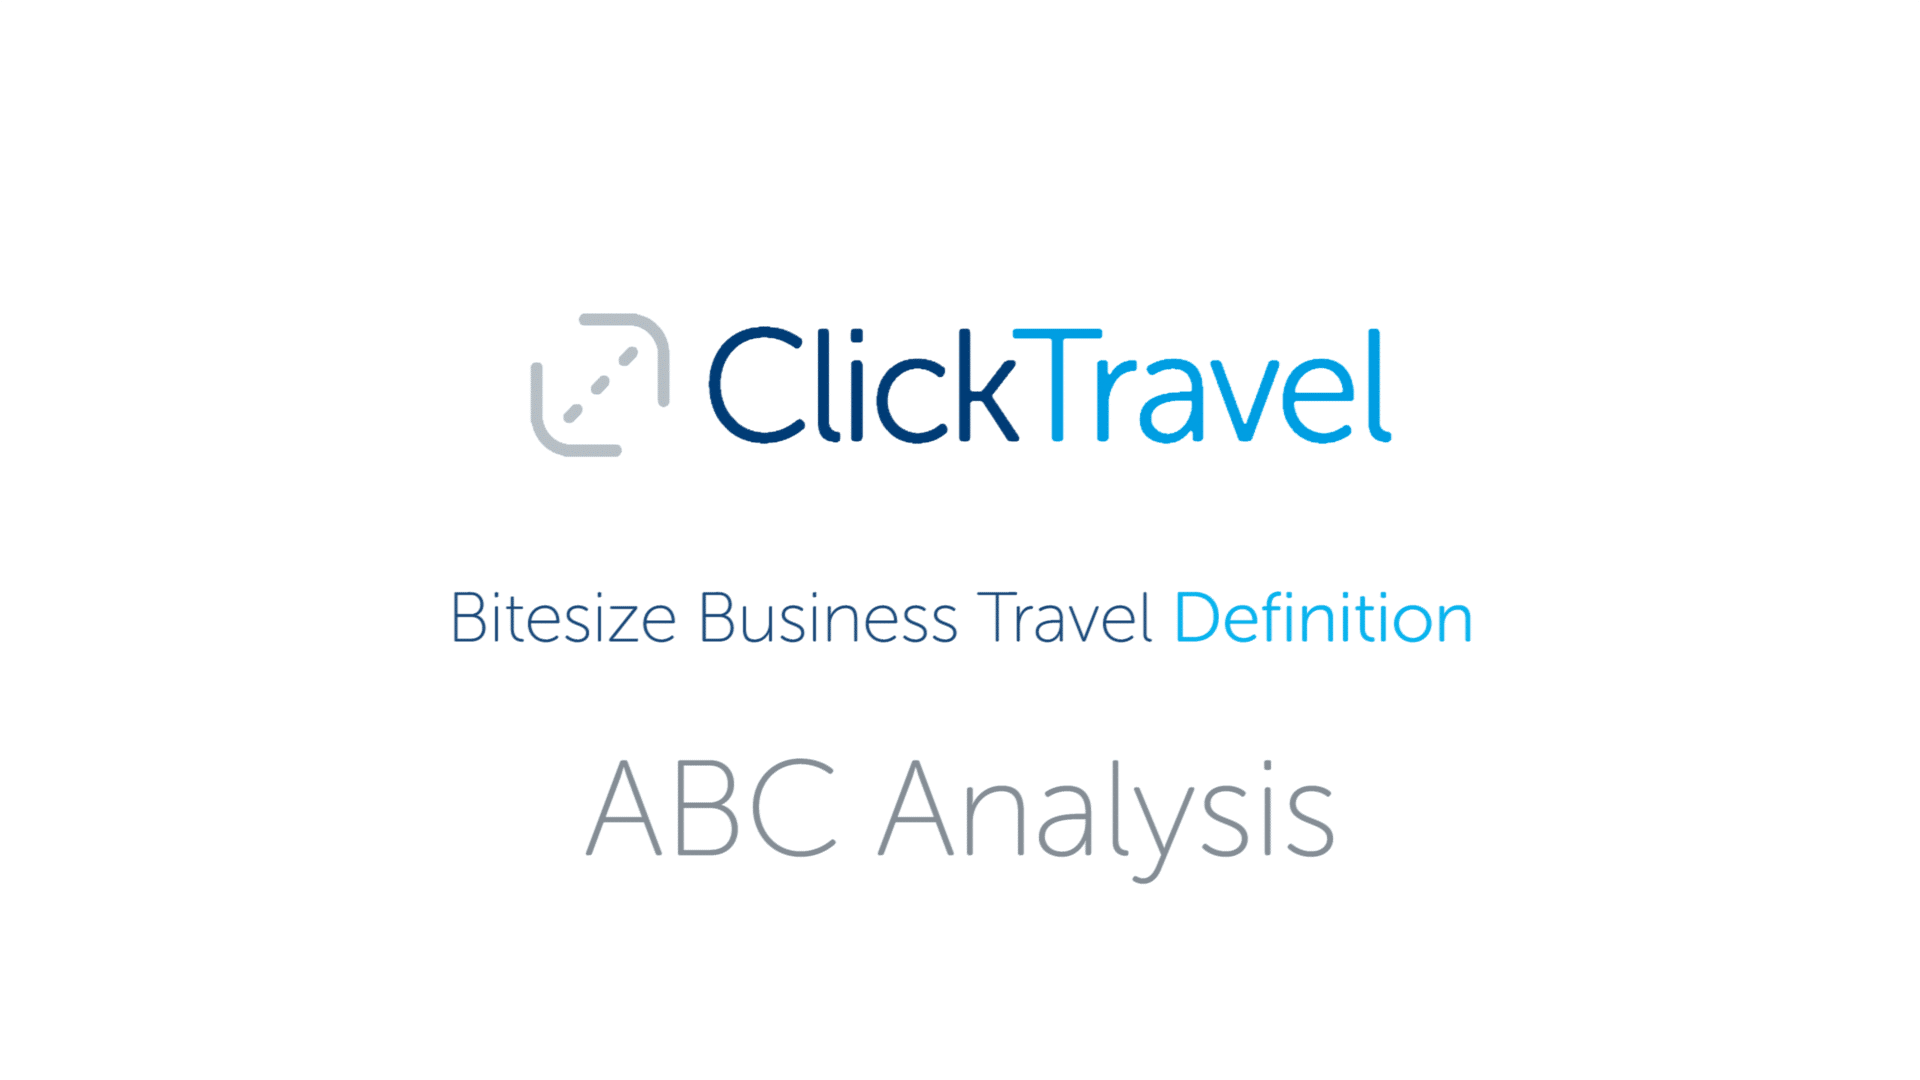 [VIDEO] Bitesize Business Travel Definition: ABC analysis